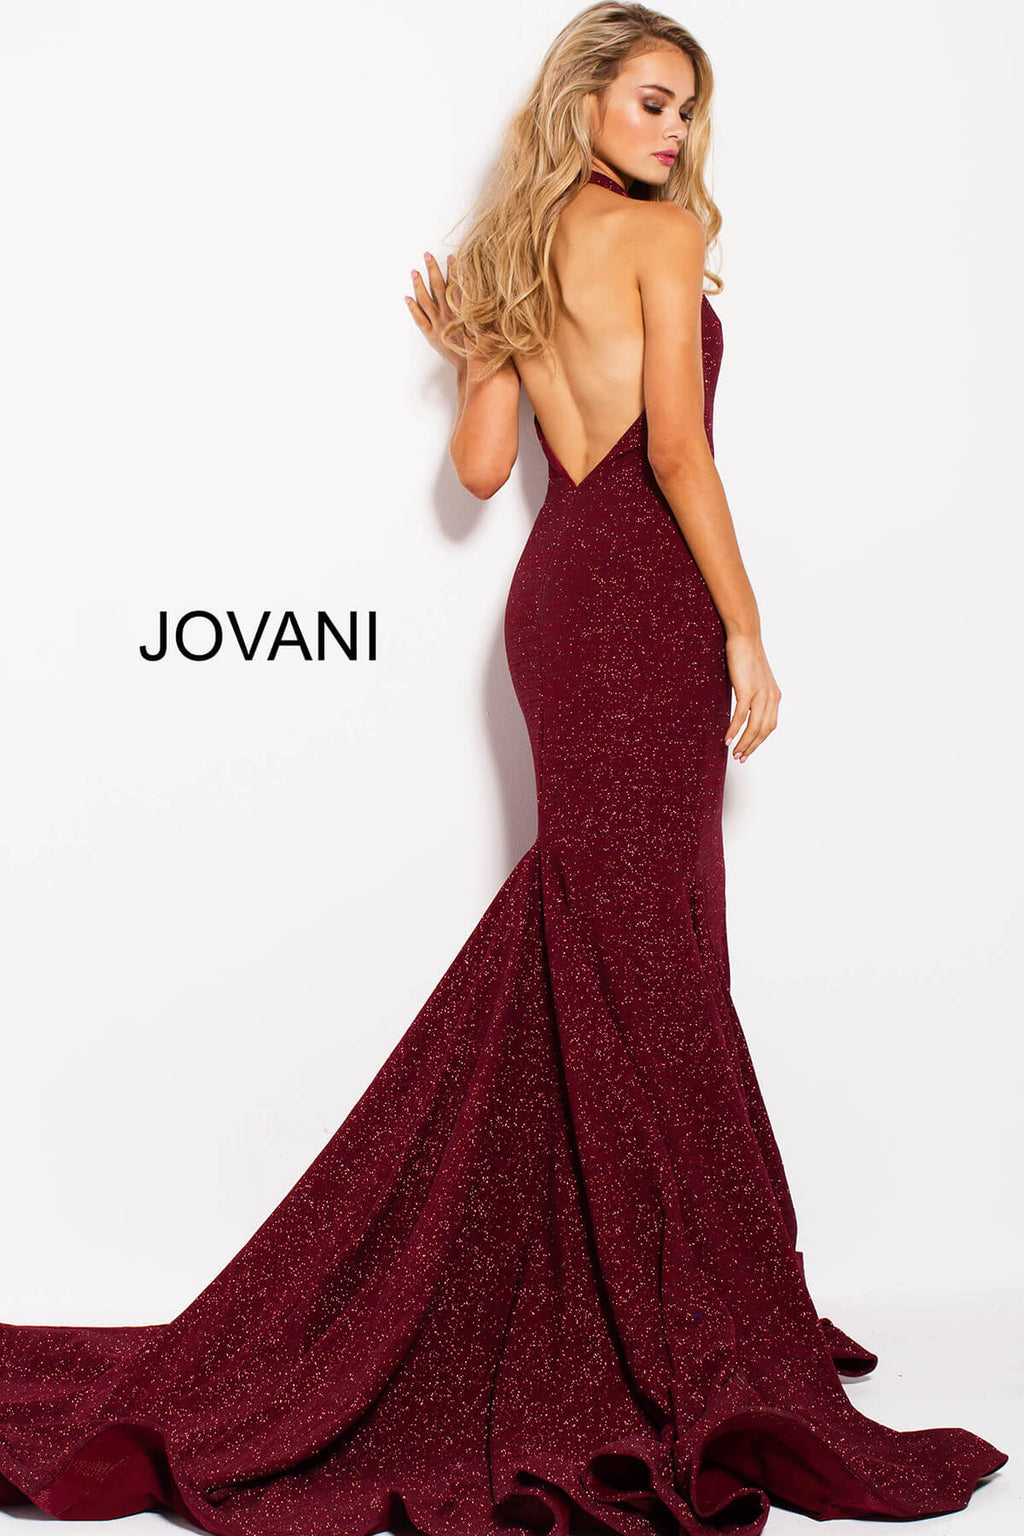 JOVANI 55414 Plunging Neck Evening Dress